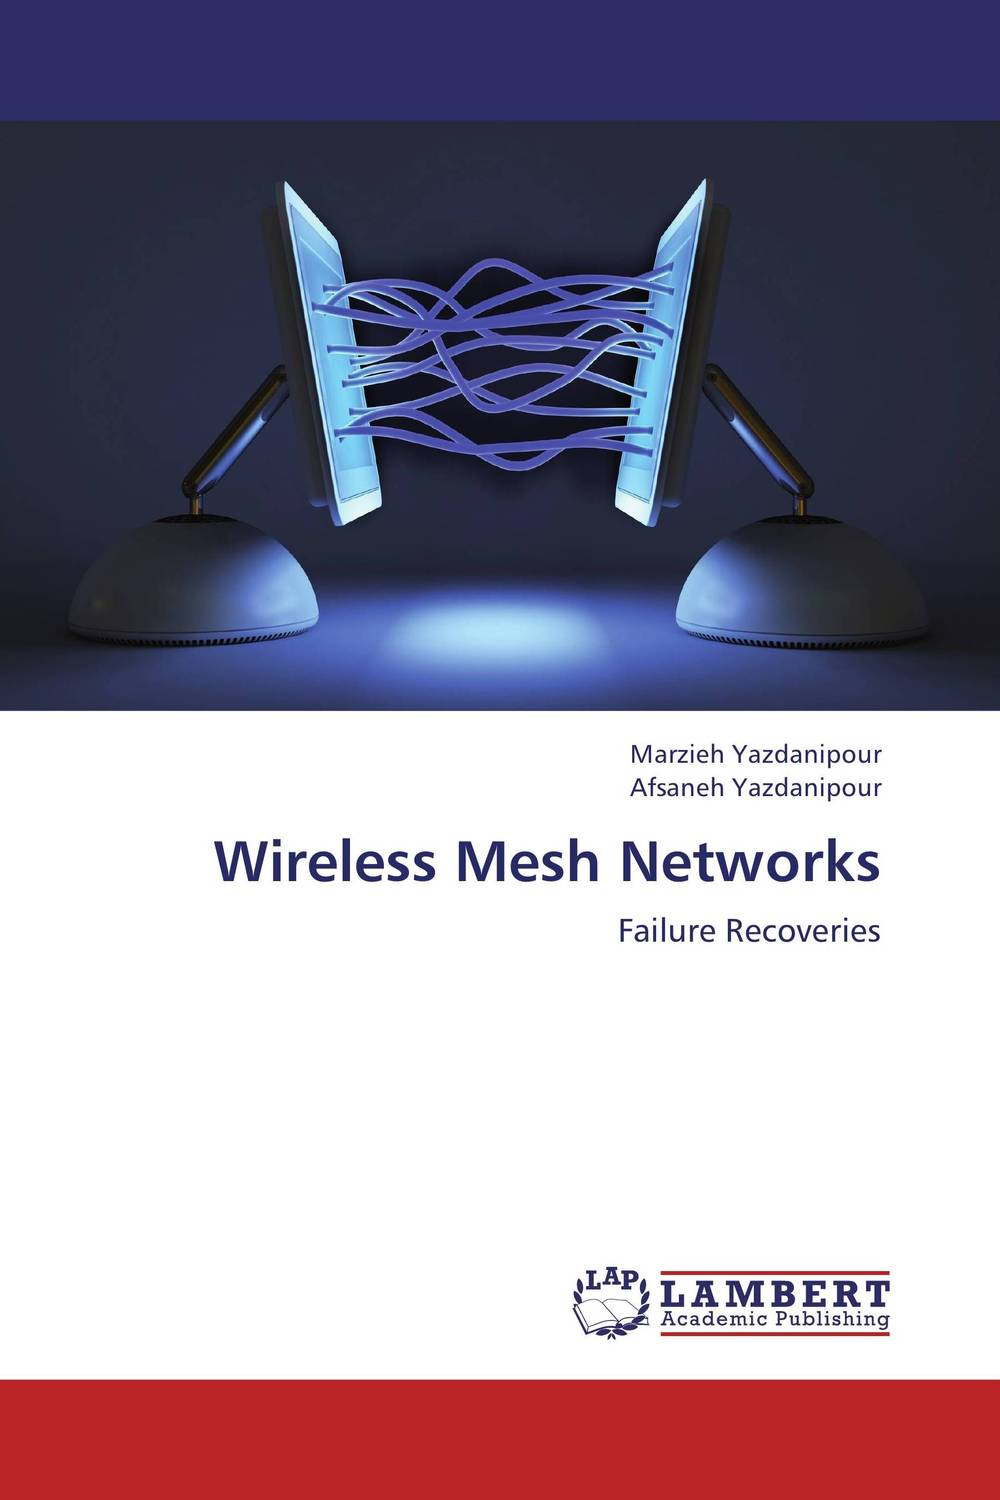 Wireless Mesh Networks network recovery